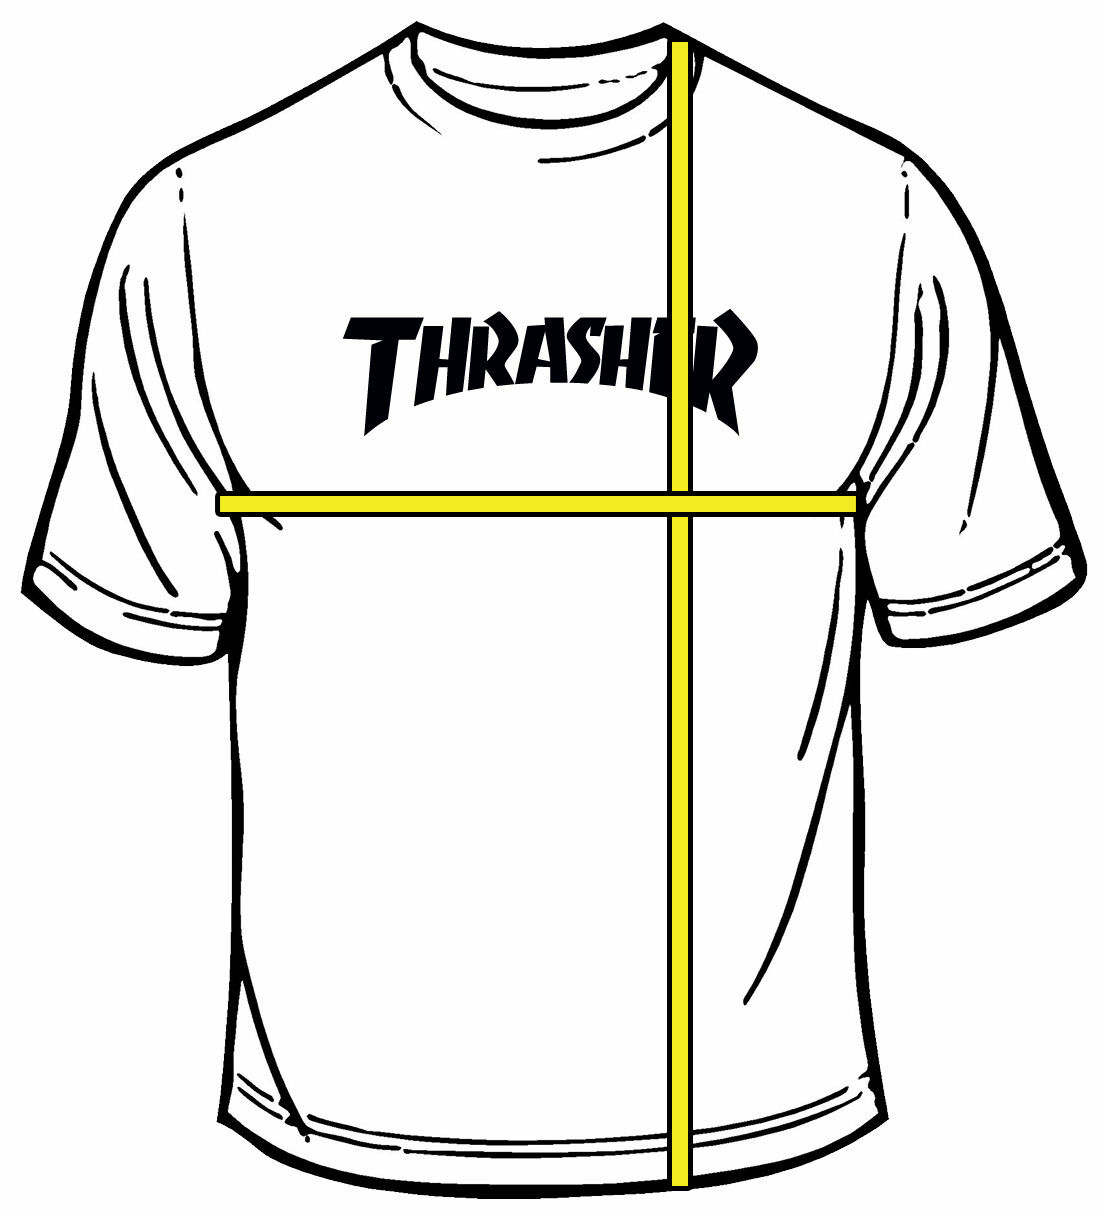 Thrasher polo